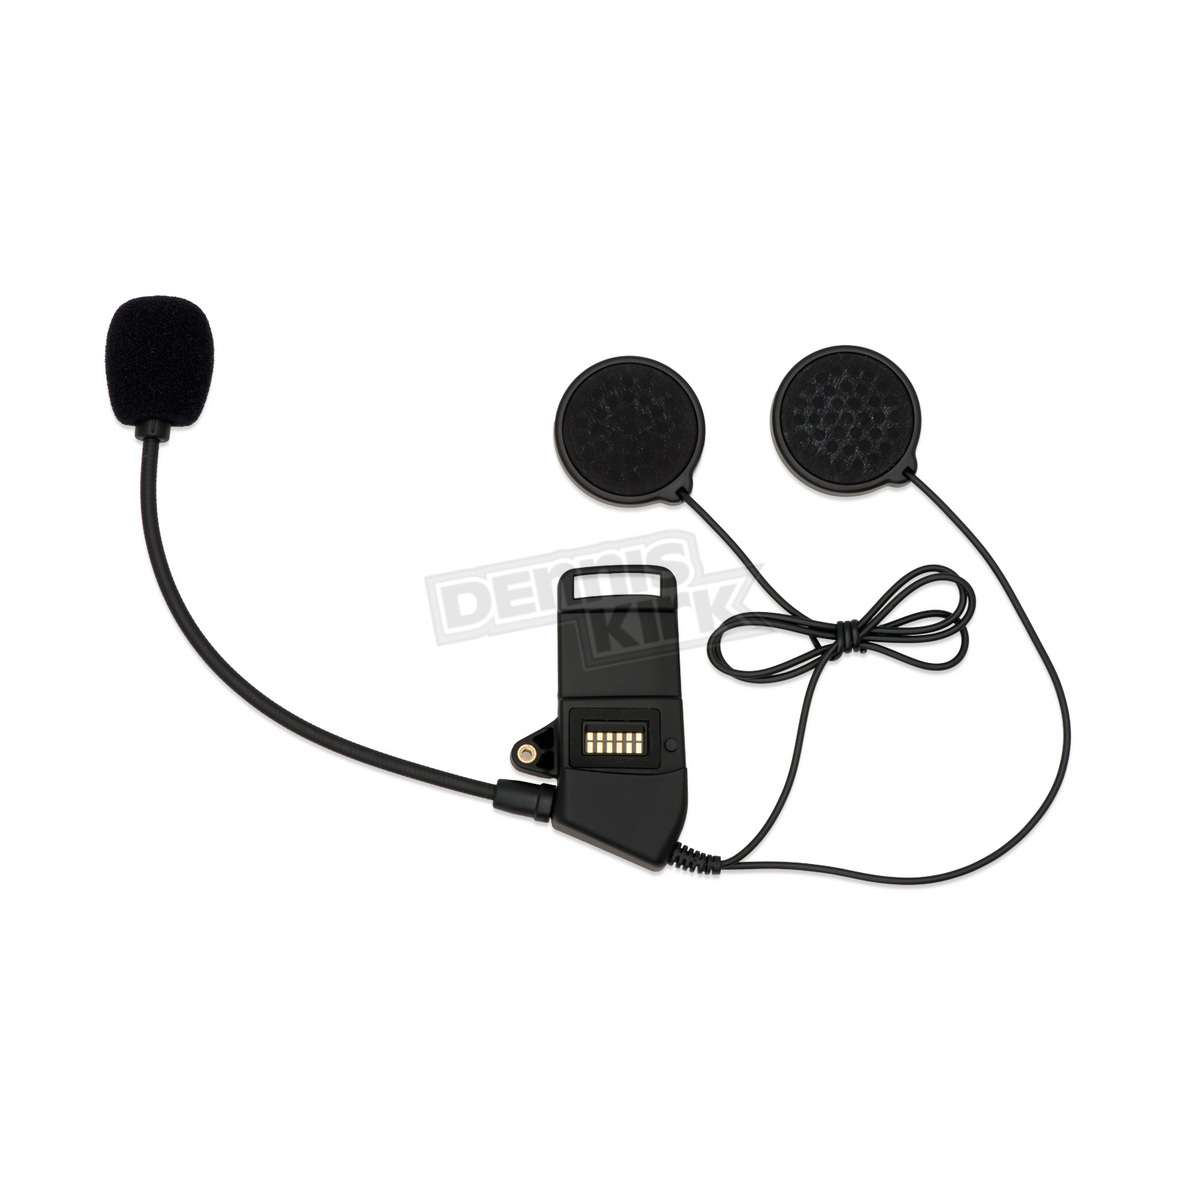 Helmet Clamp with Speakers/Boom Mic for Integrated Intercoms For BELL  Helmets - 7021592